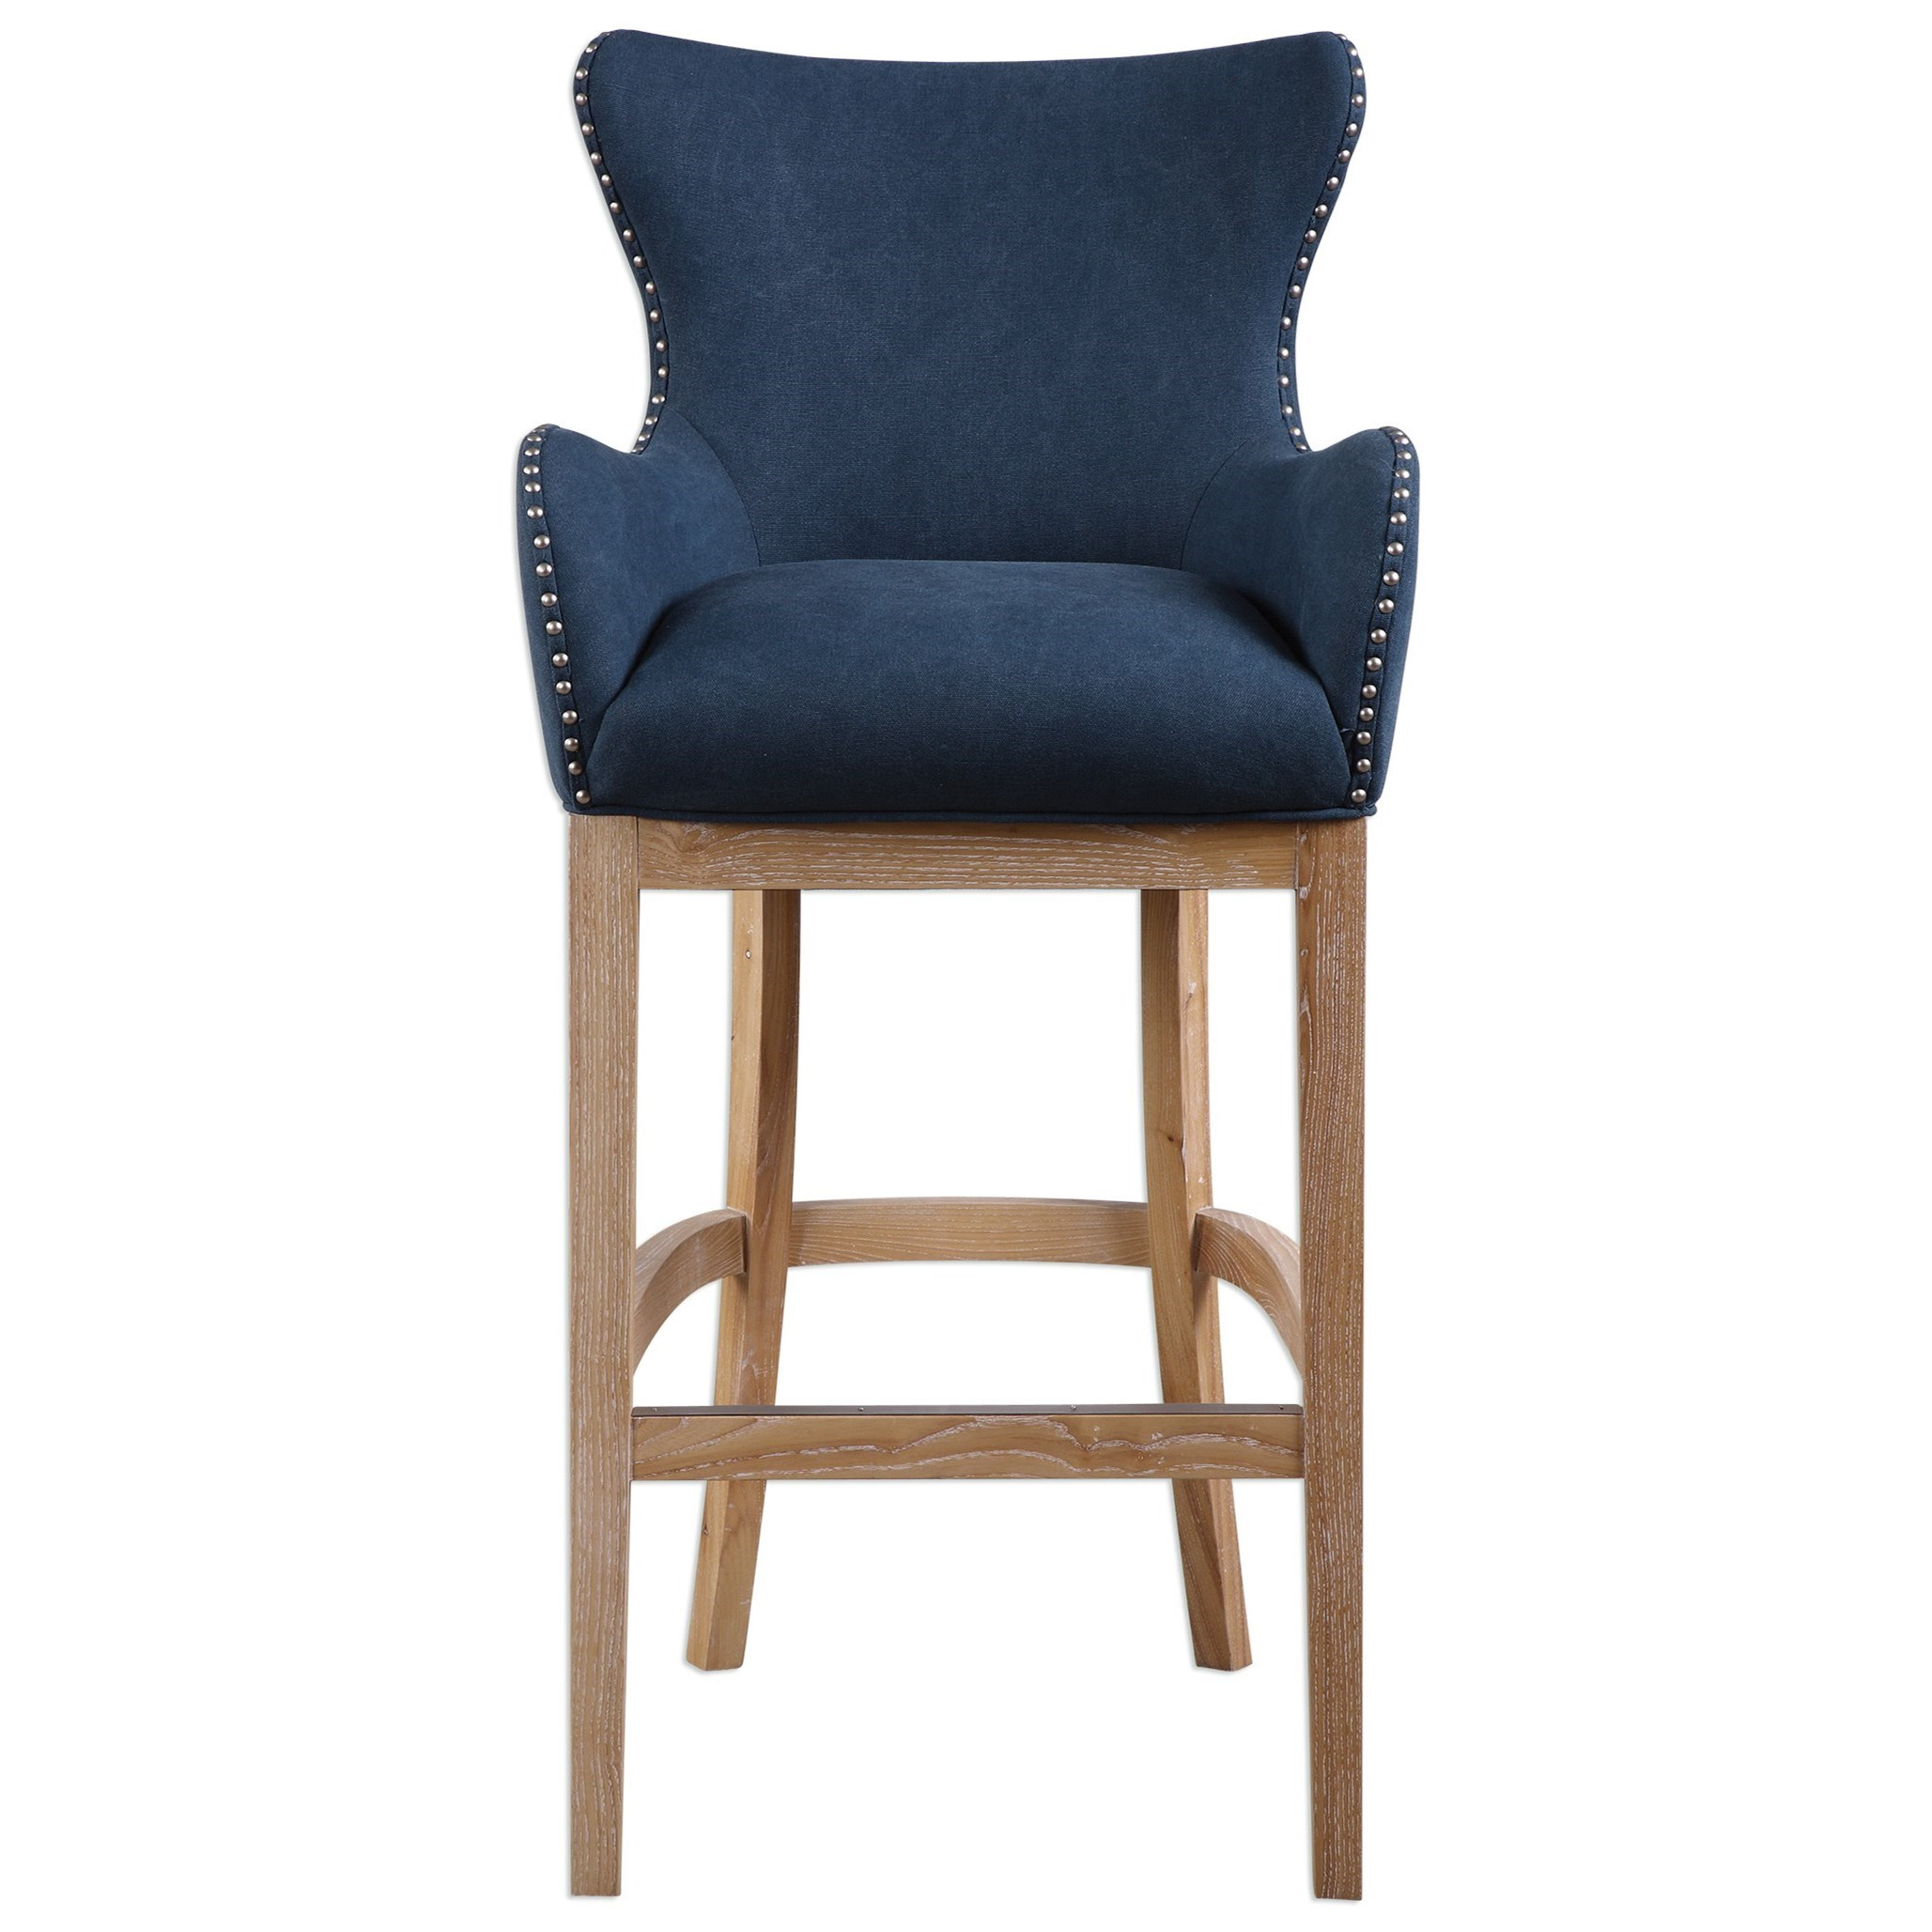 Uttermost Accent Furniture Barton Bar Stool - Item Number: 23317